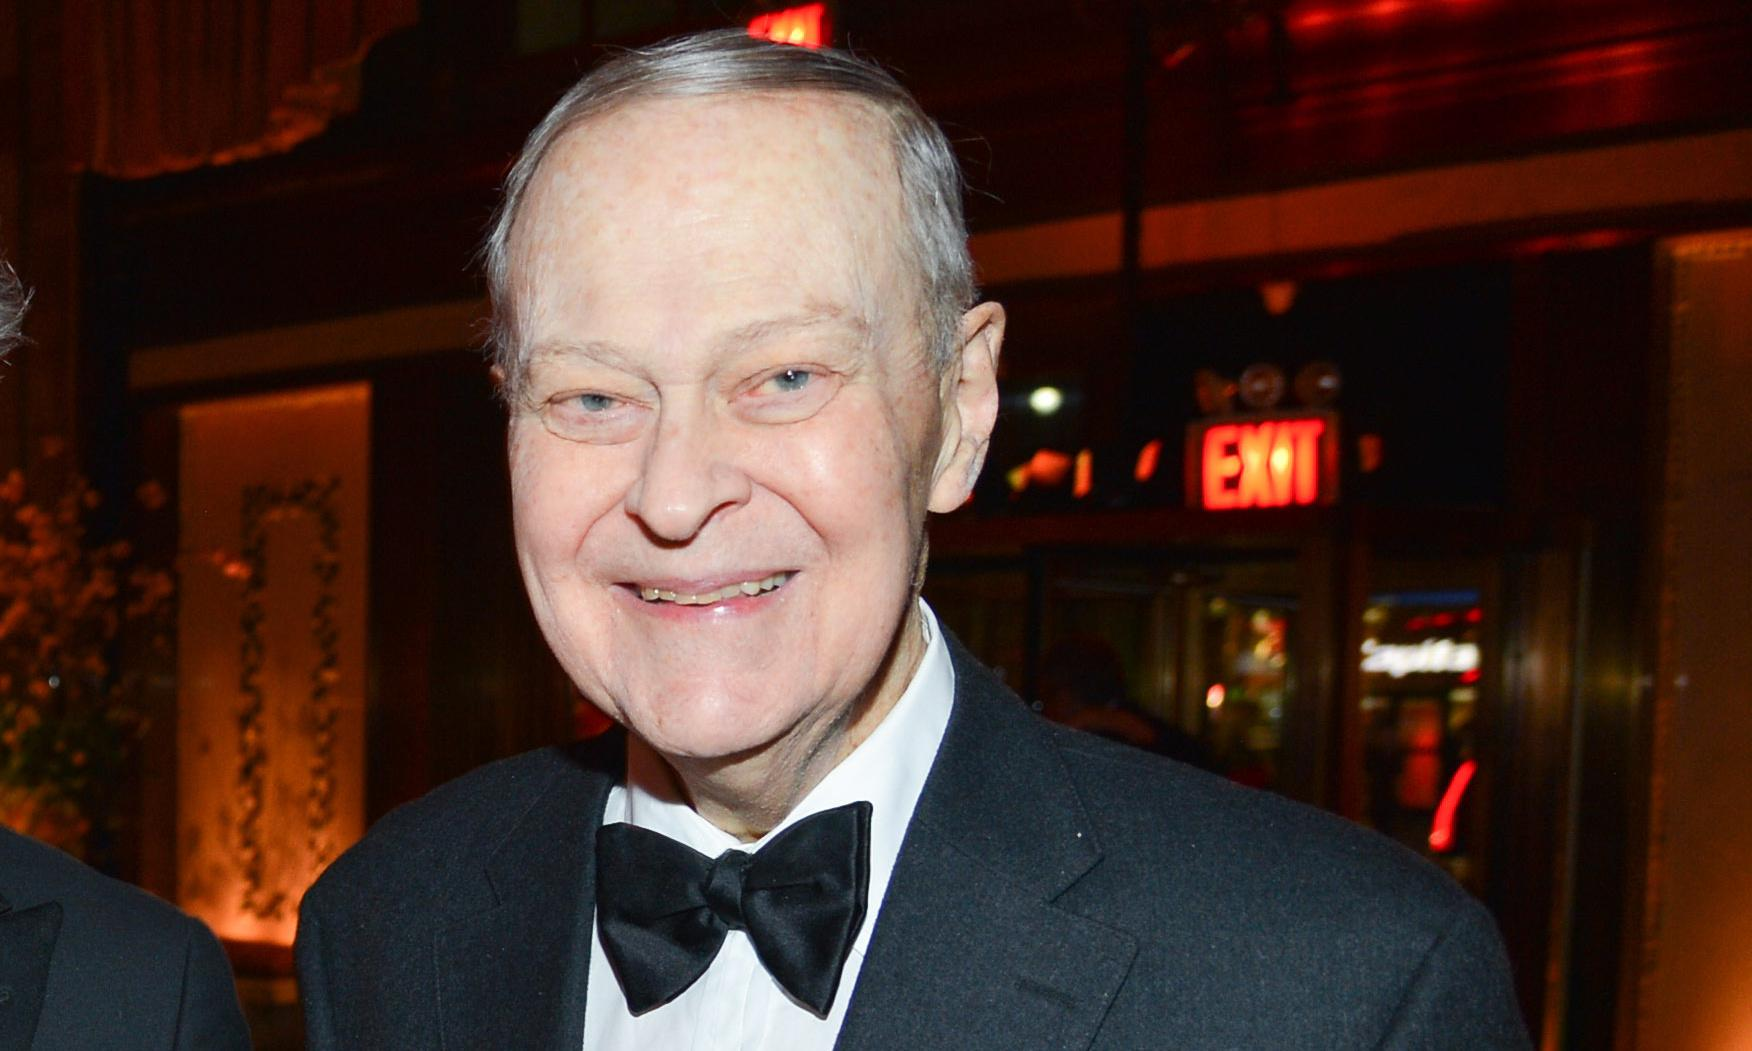 Frederick Koch, arts benefactor and low-profile Koch brother, dies aged 86